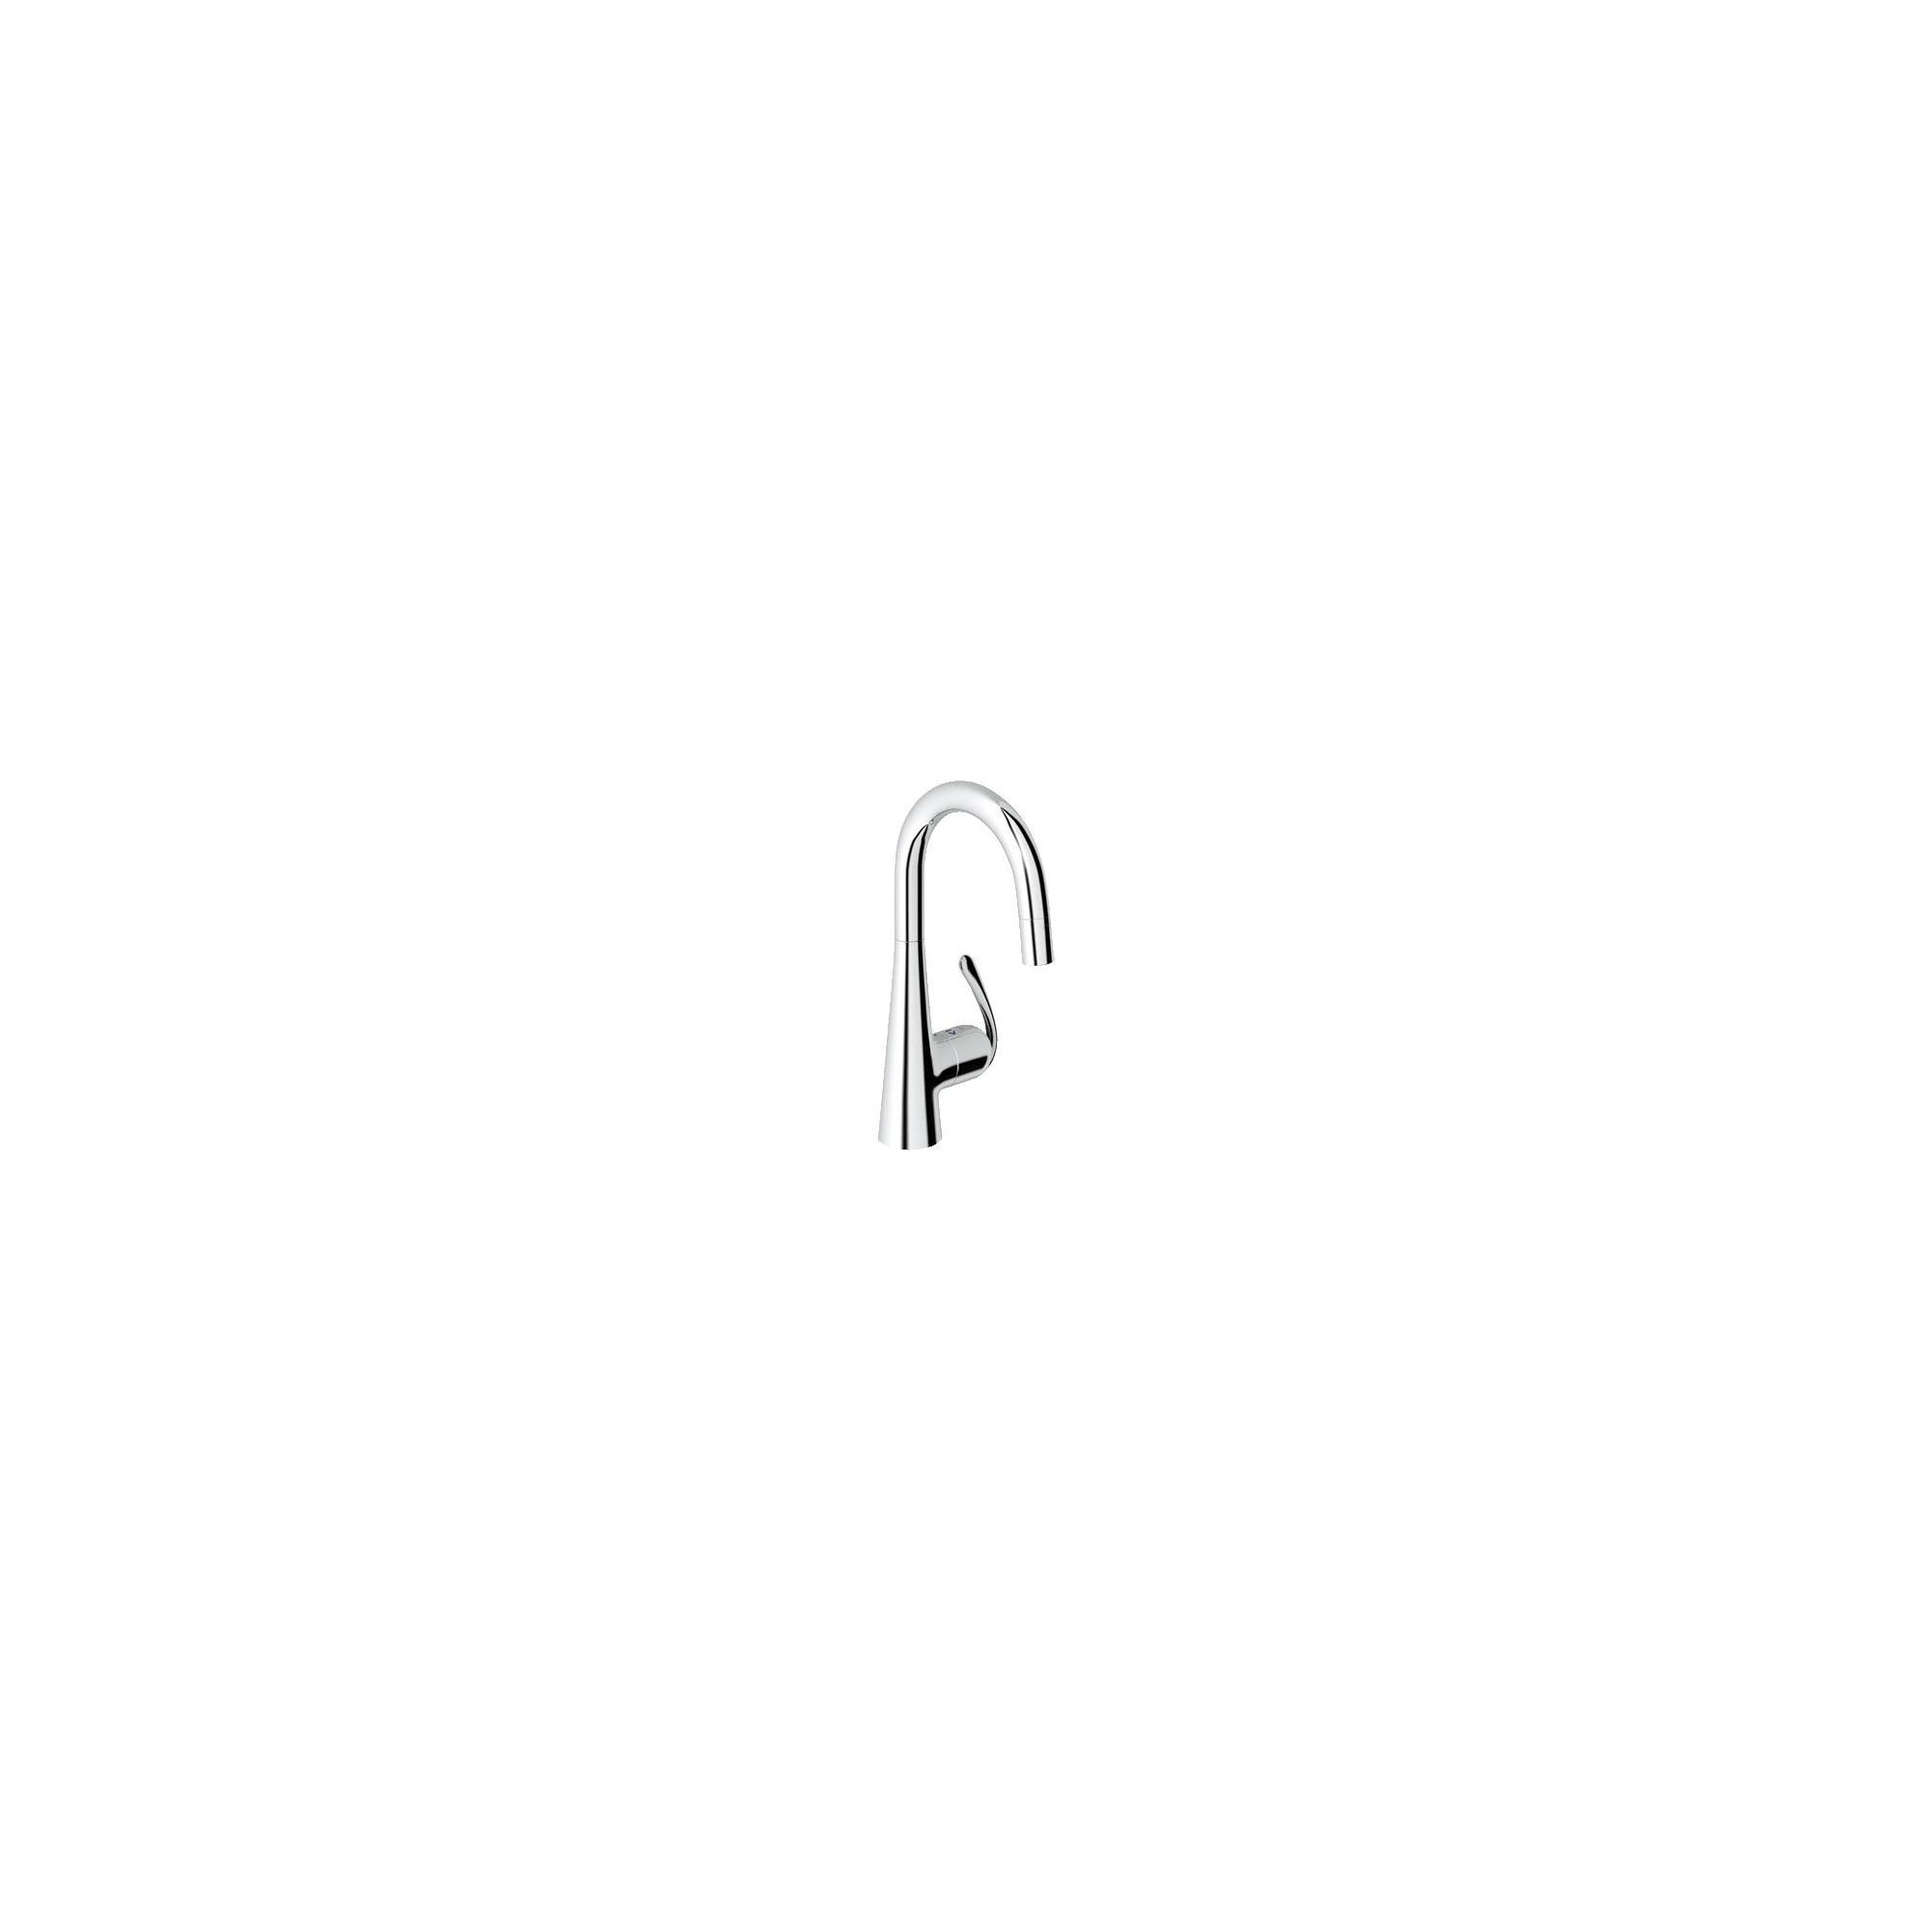 Grohe Zedra Mono Sink Mixer Tap, Pull-Down Spray, Single Handle, Chrome at Tesco Direct